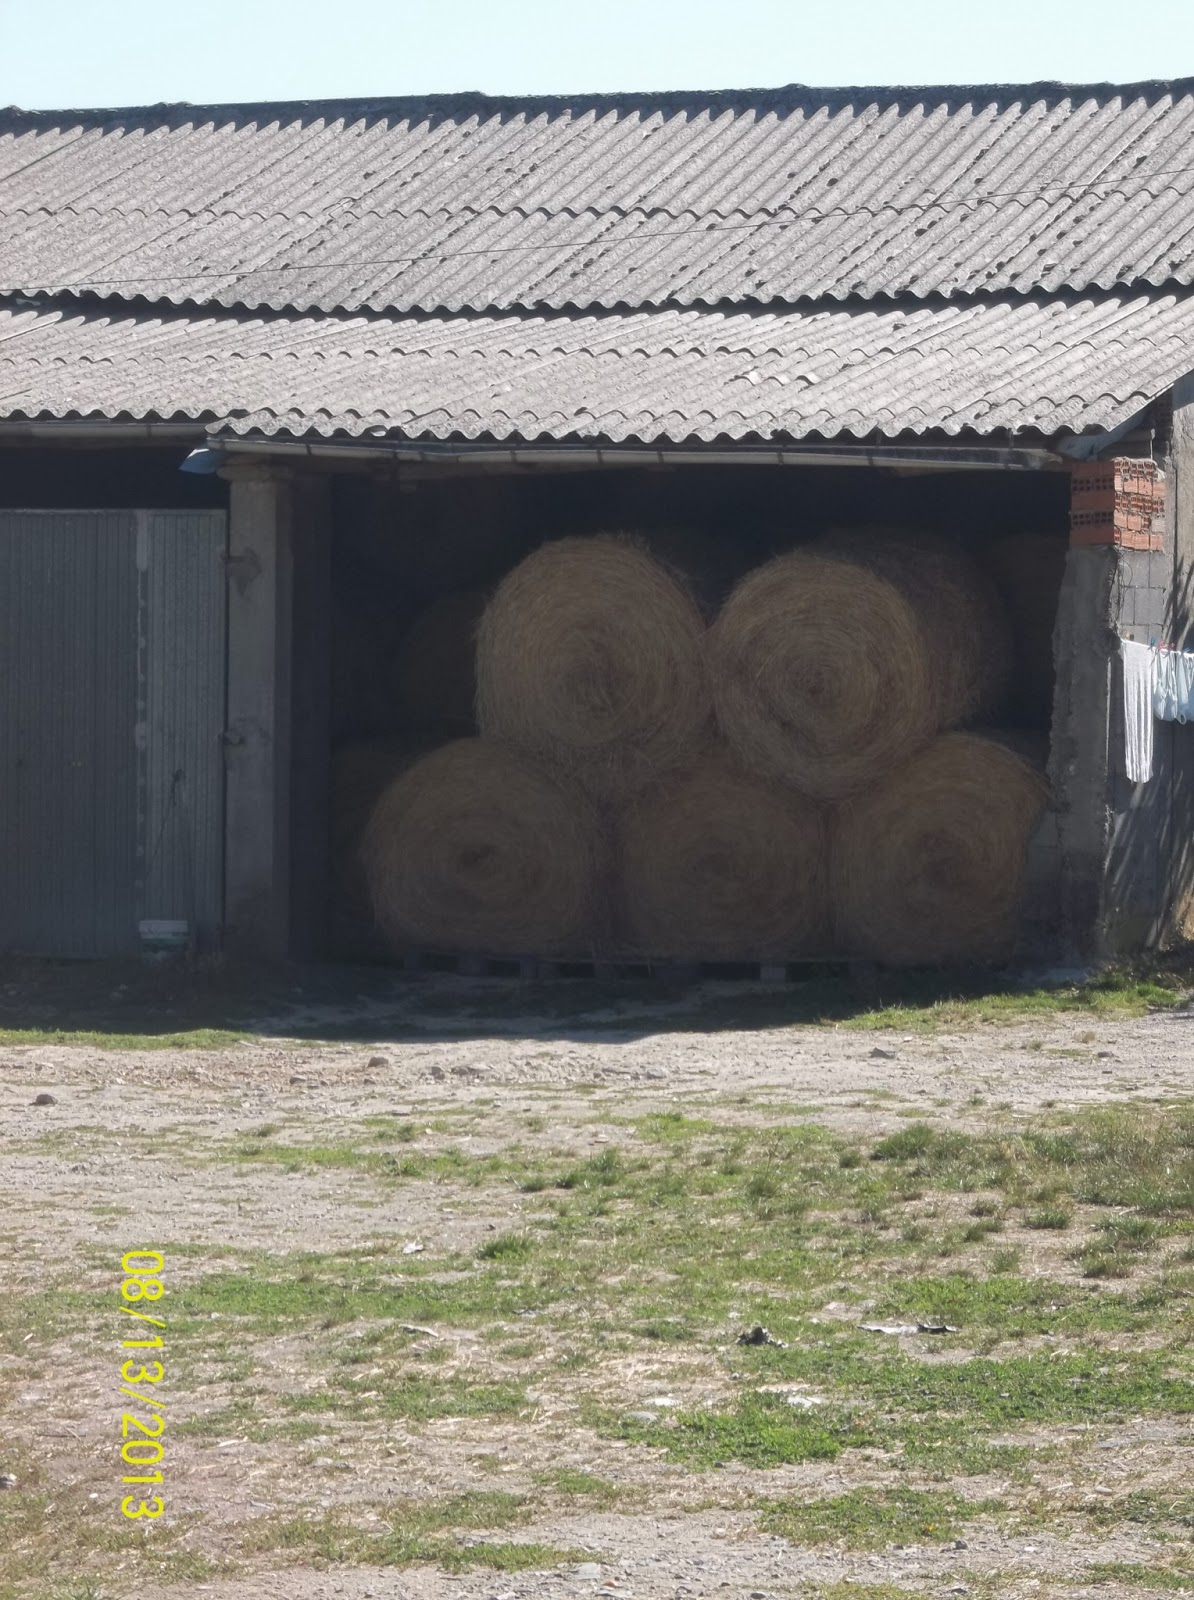 A picture of a barn along the Camino. There are 5 cylindrical bales of hay inside of it.